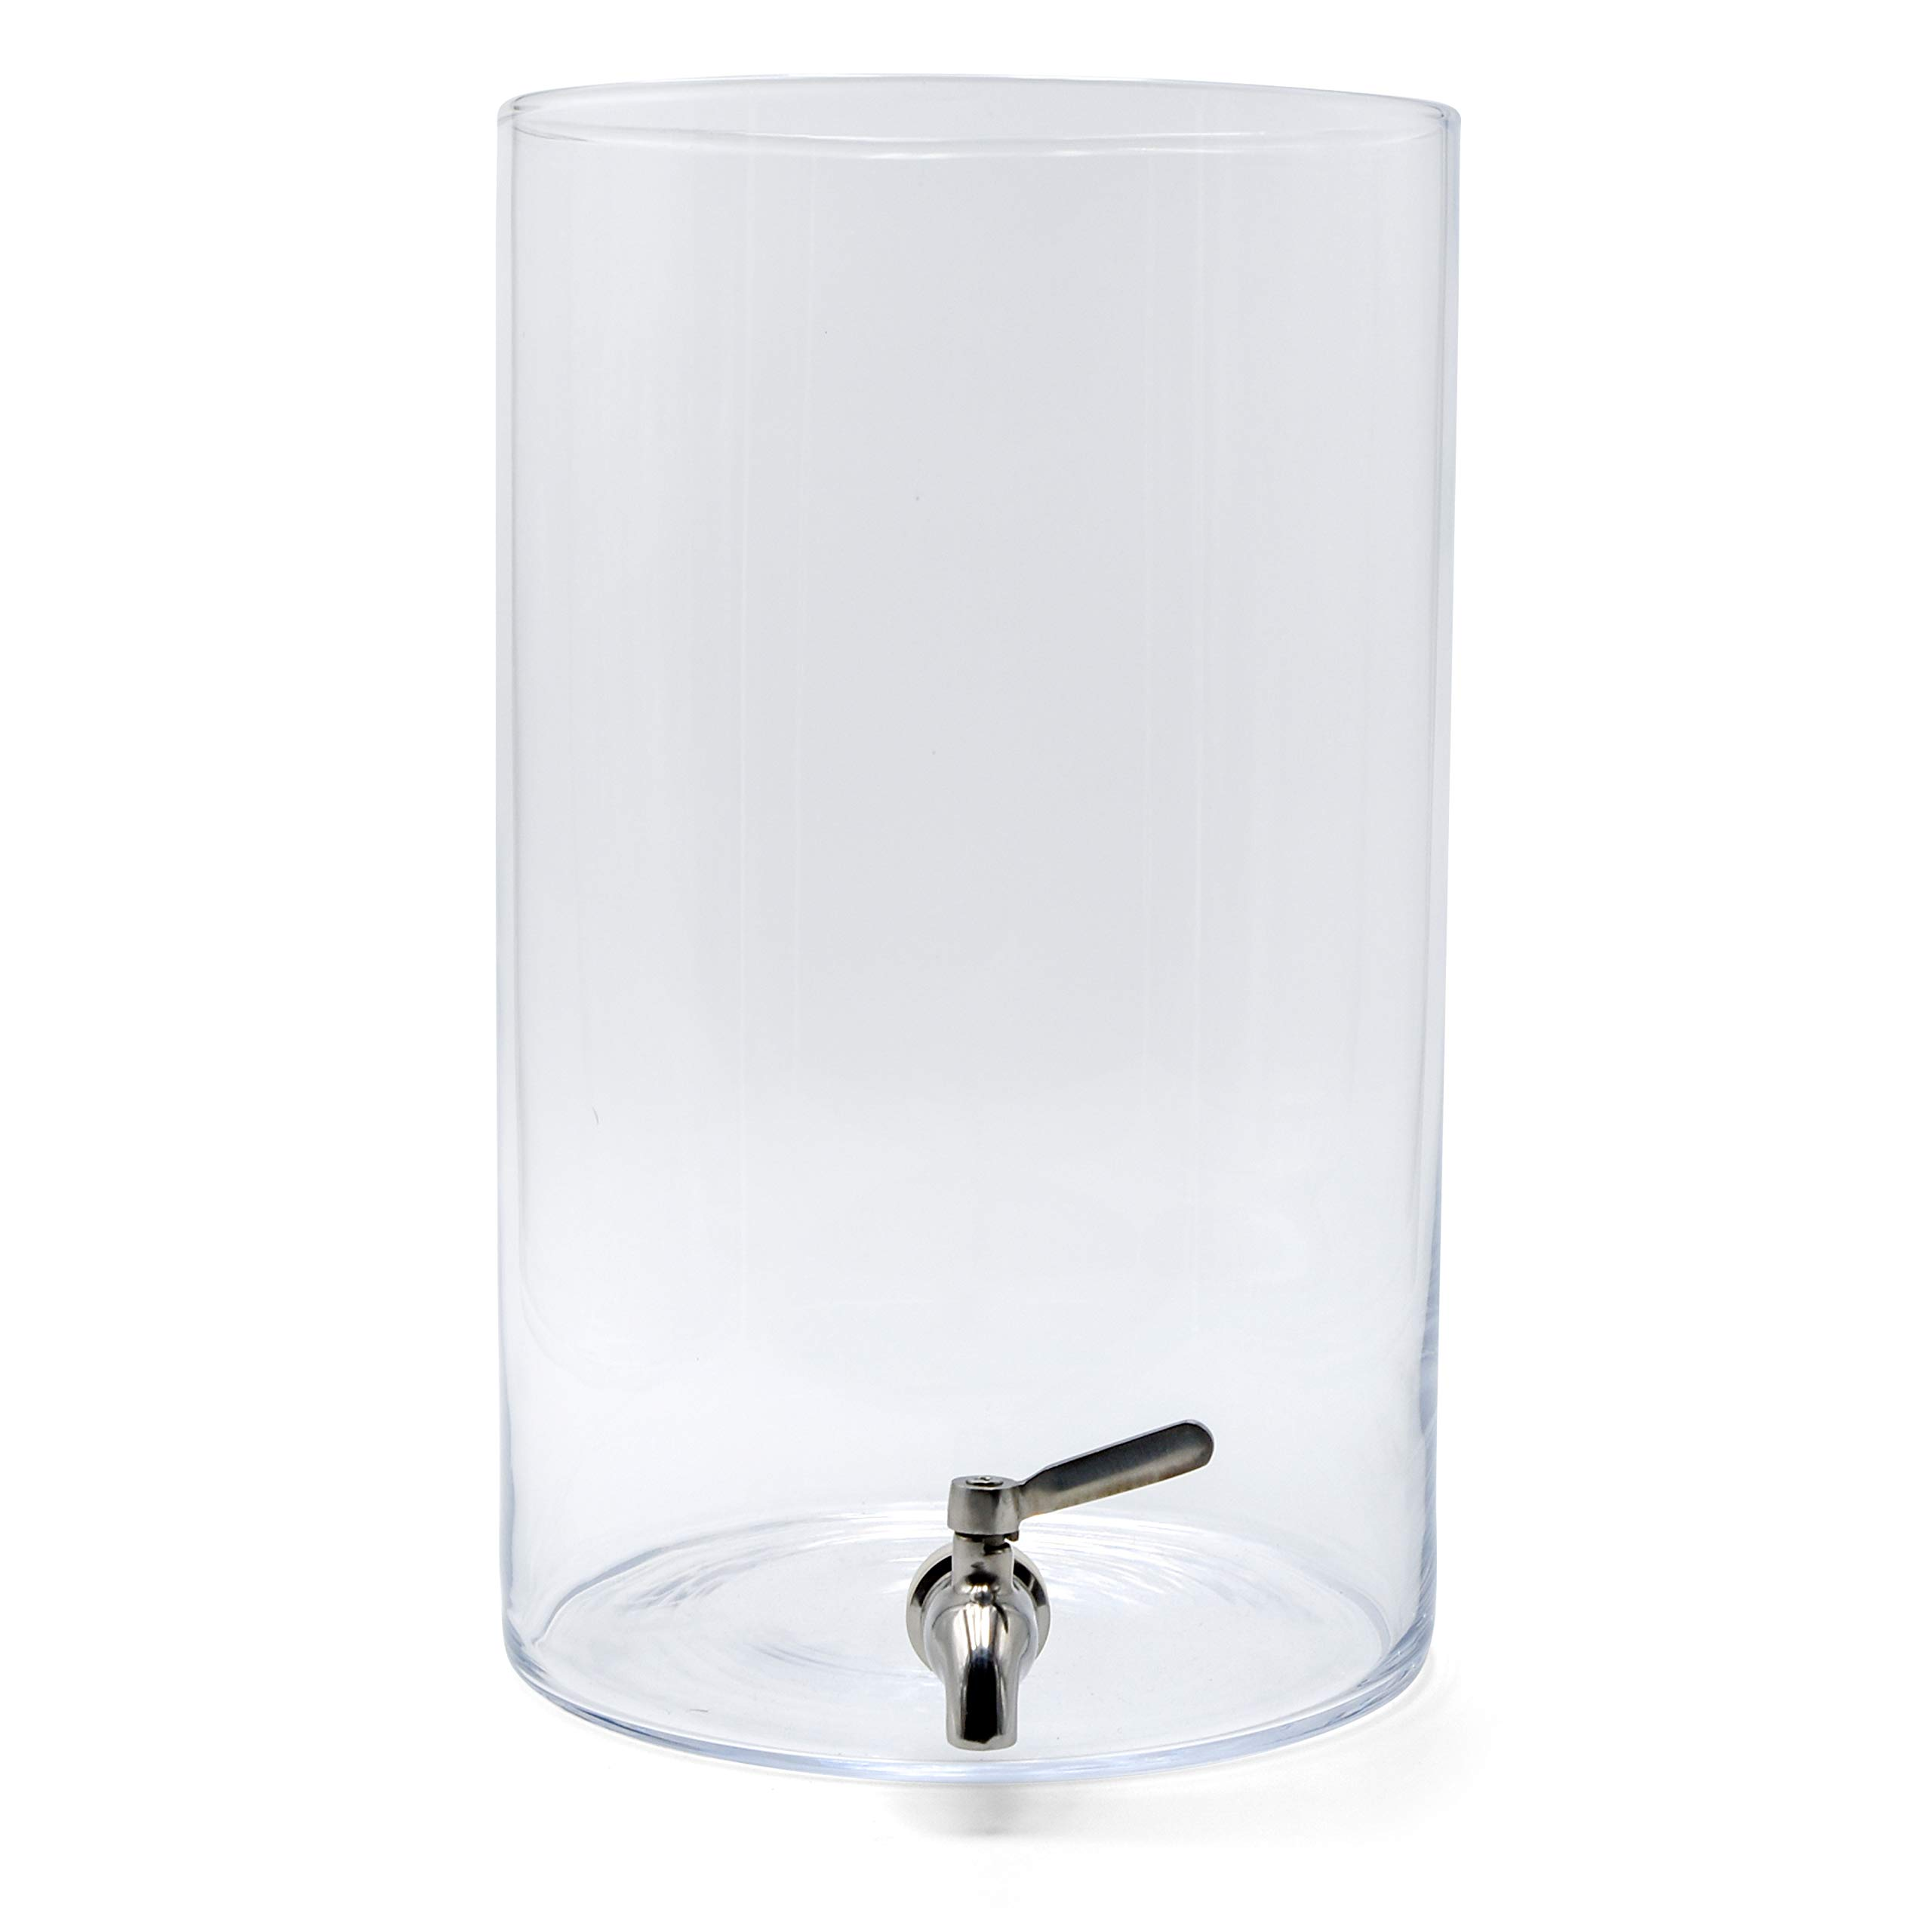 Northern Brewer Glass Continuous Kombucha Container with Stainless Steel Spigot (3 Gallon Glass w/Stainless Spigot)